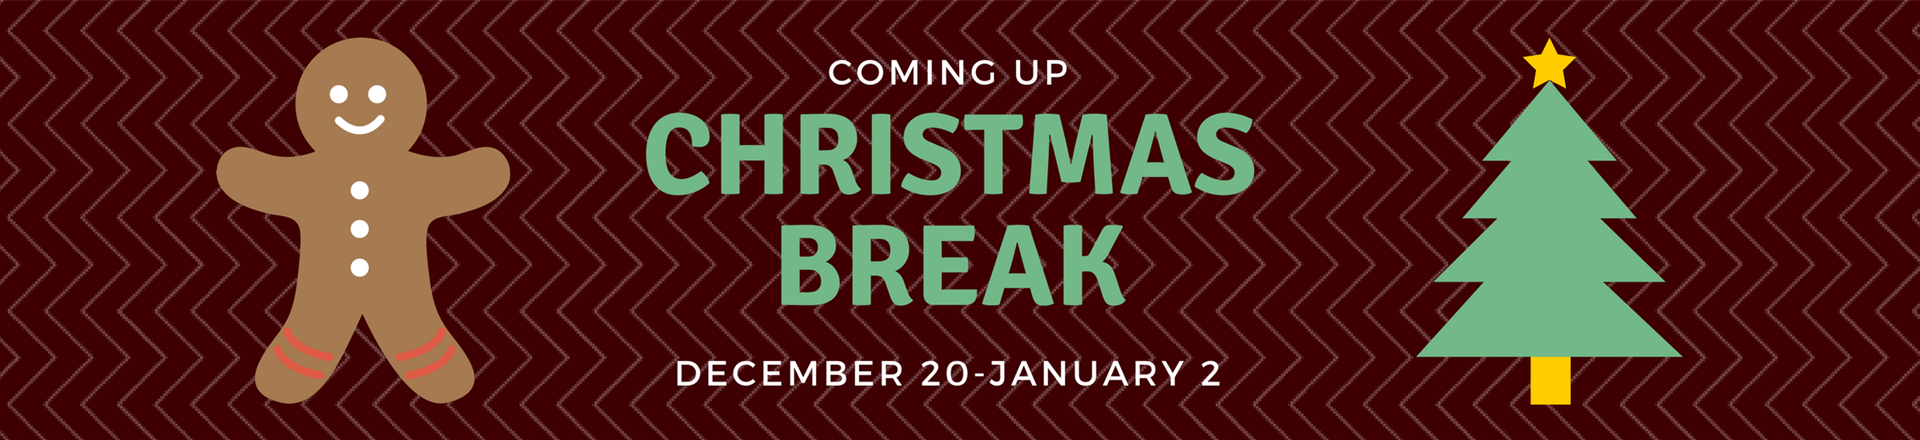 Christmas Break, Dec 20-Jan2